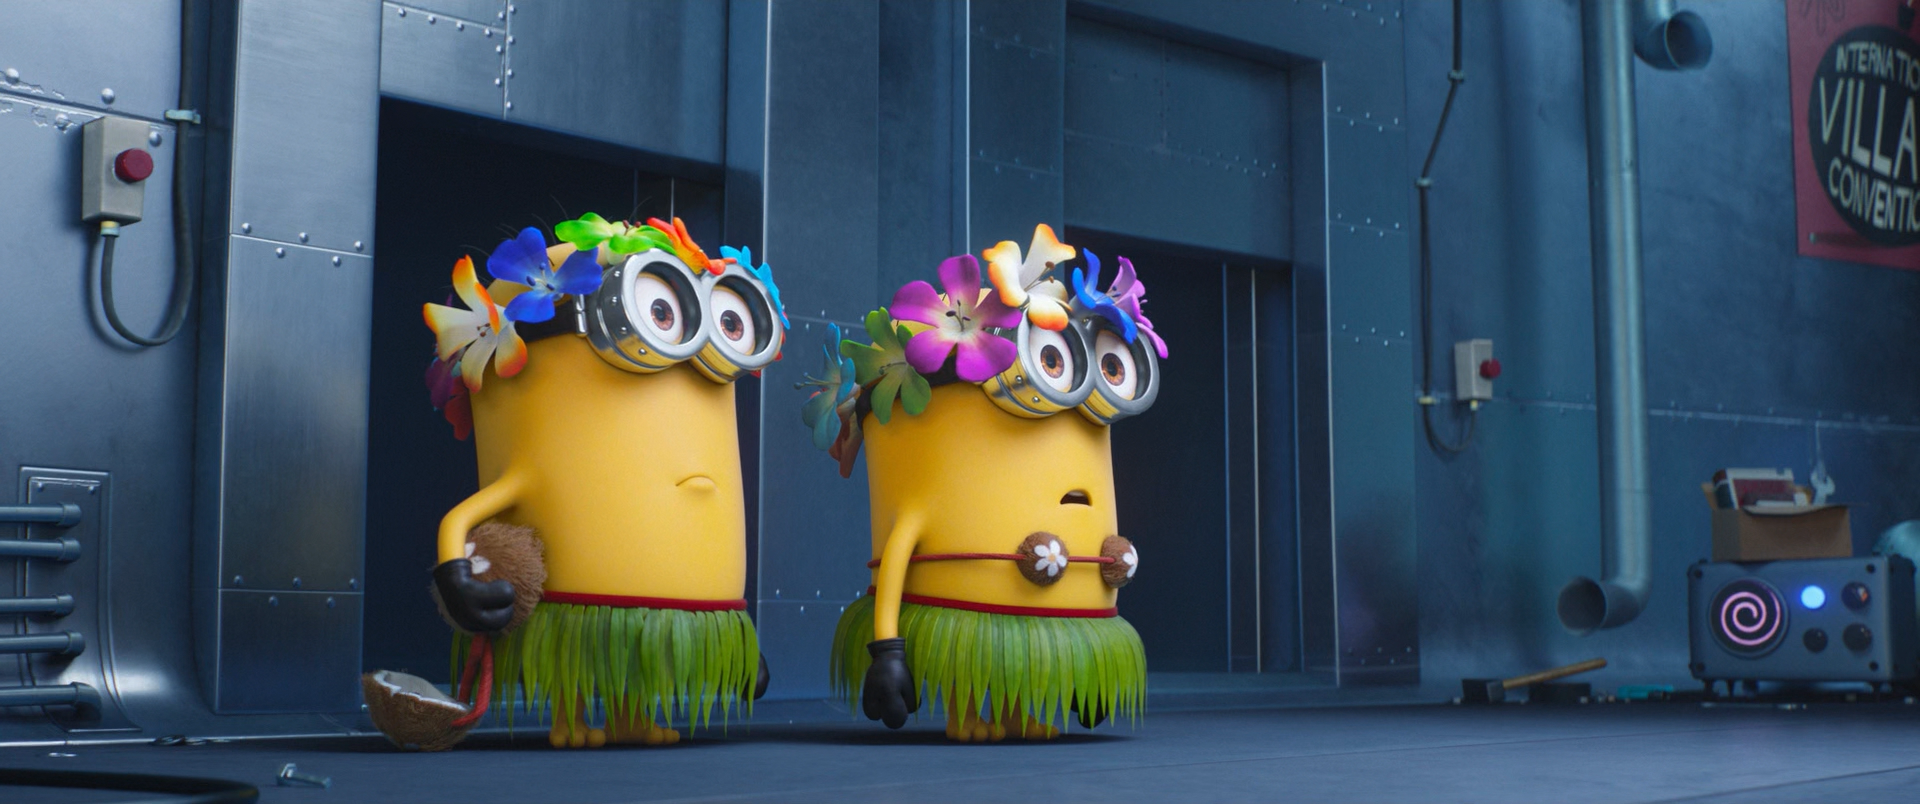 Despicable.Me.3.2017.1080p_HEVCCLUB023134.png